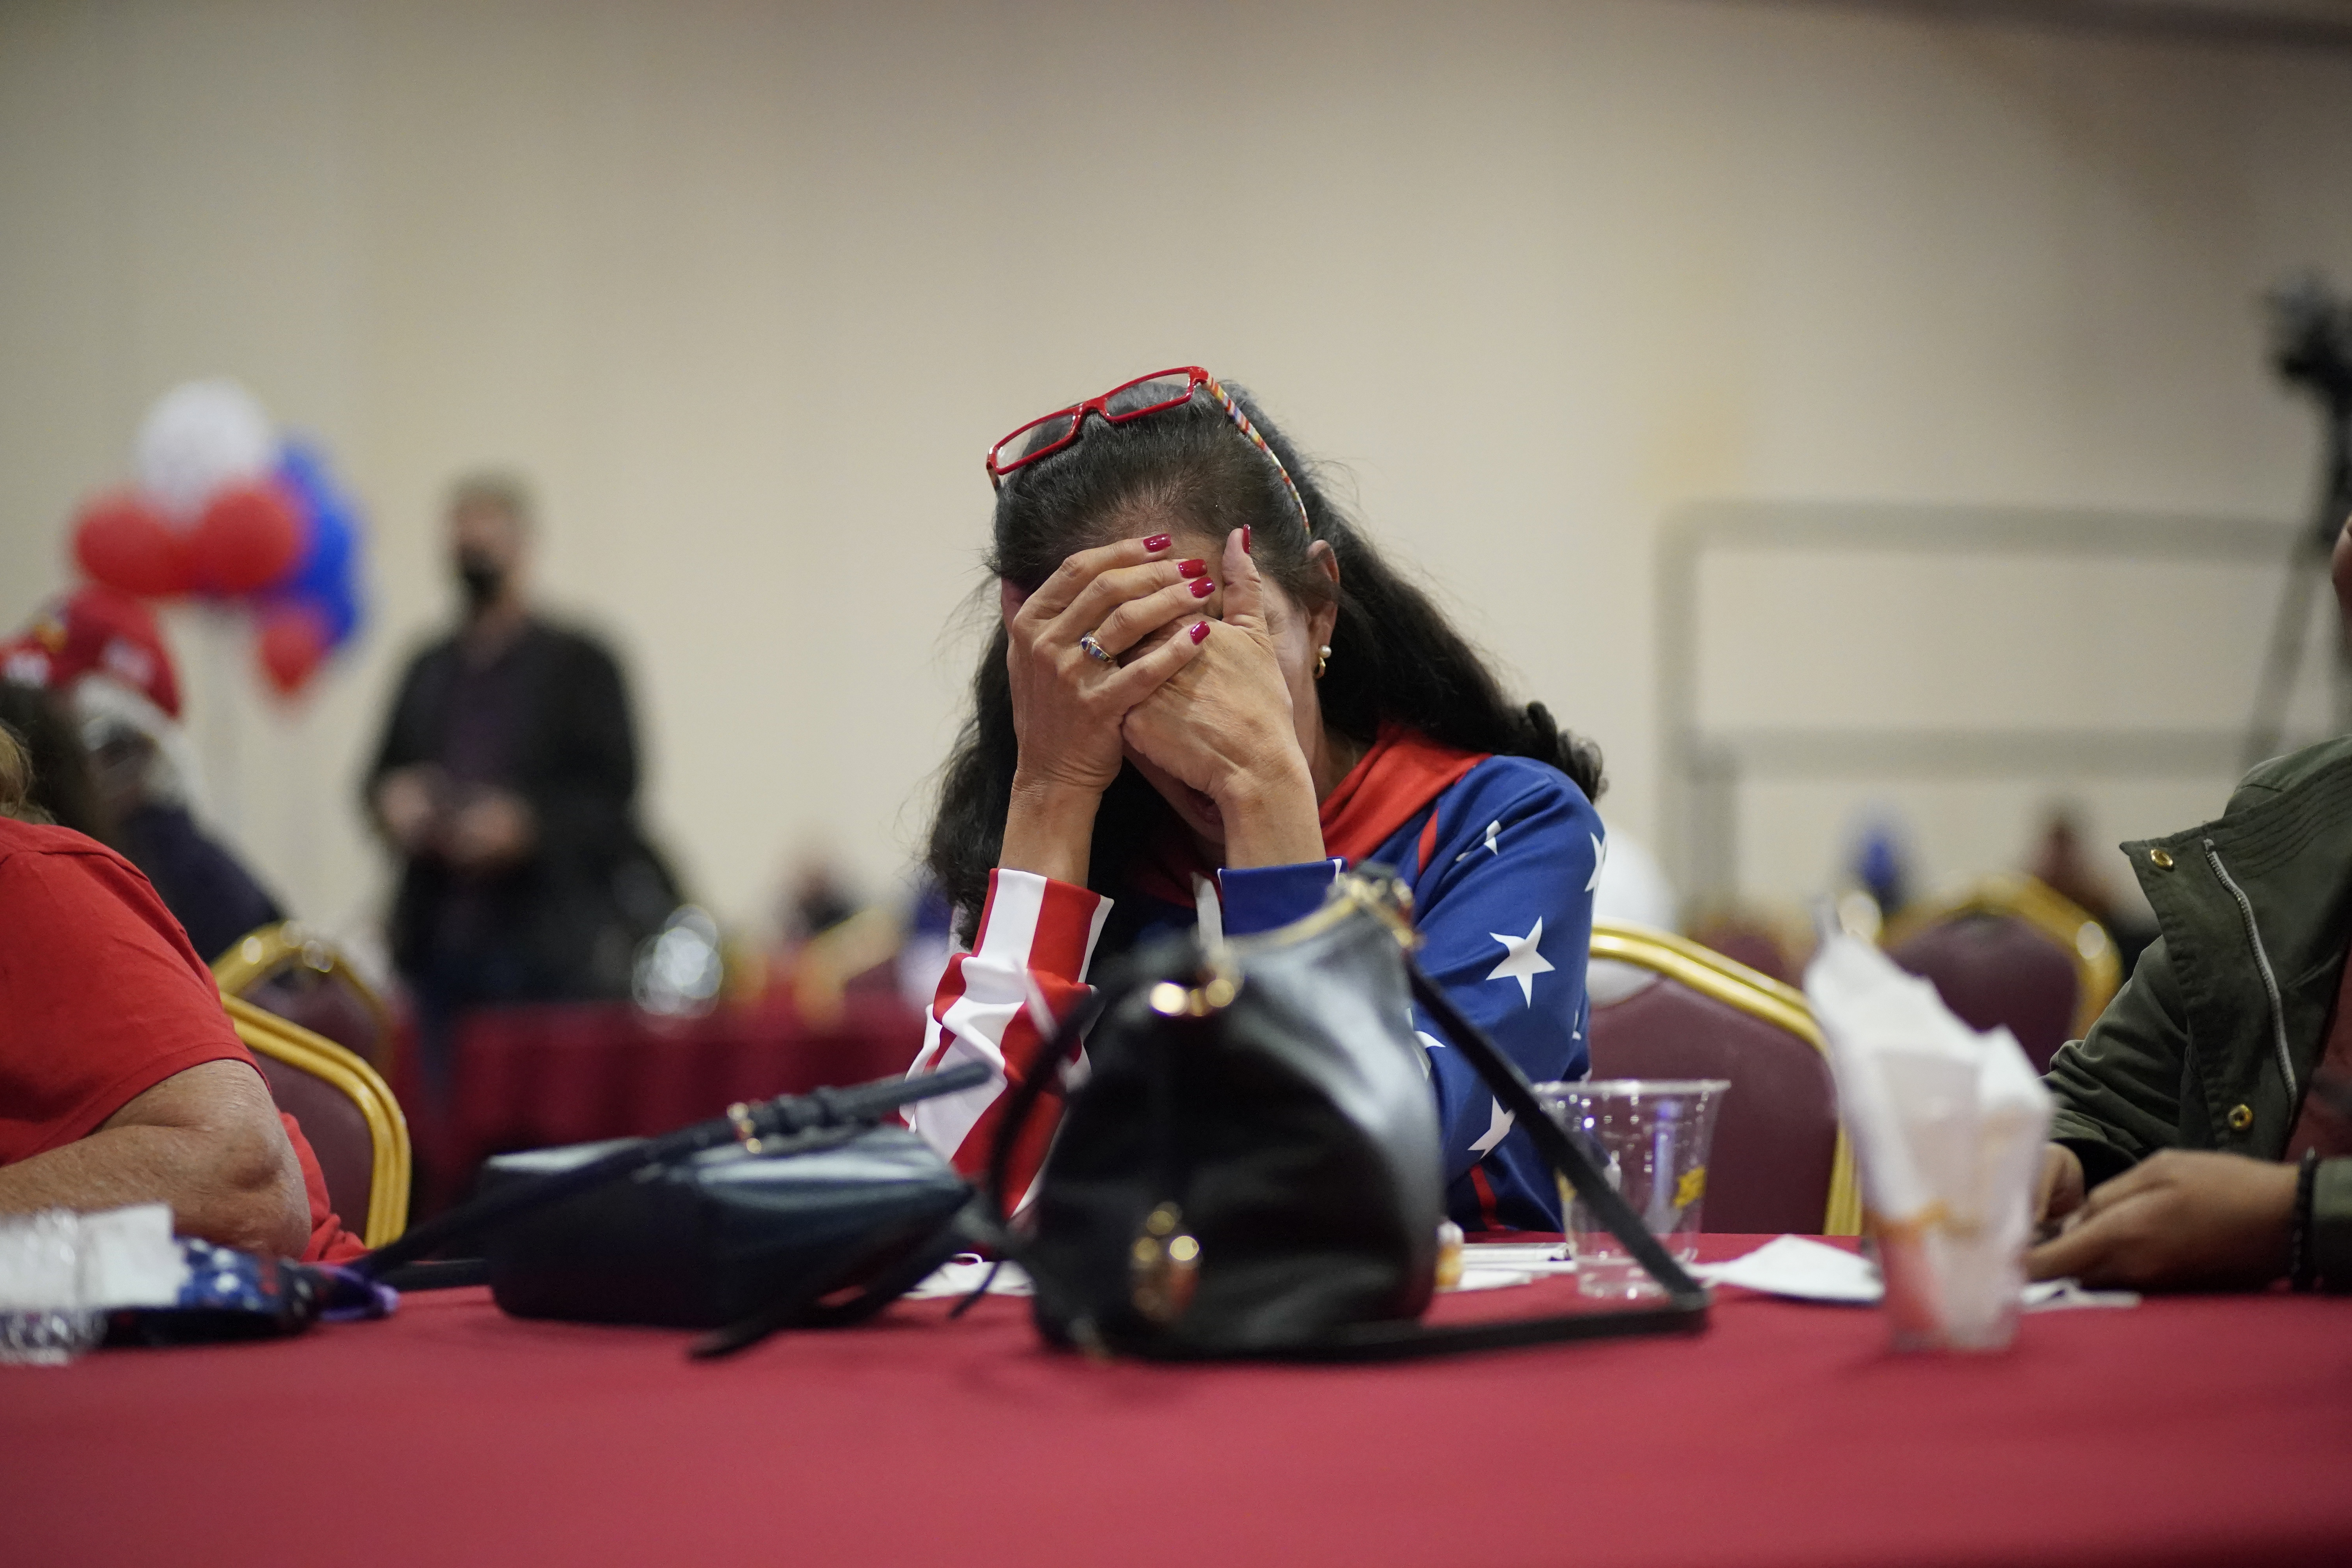 President Donald Trump supporter Loretta Oakes reacts while watching returns in favor of Democratic presidential candidate former Vice President Joe Biden, at a Republican election-night watch party, Tuesday, Nov. 3, 2020, in Las Vegas. (John Locher/AP)